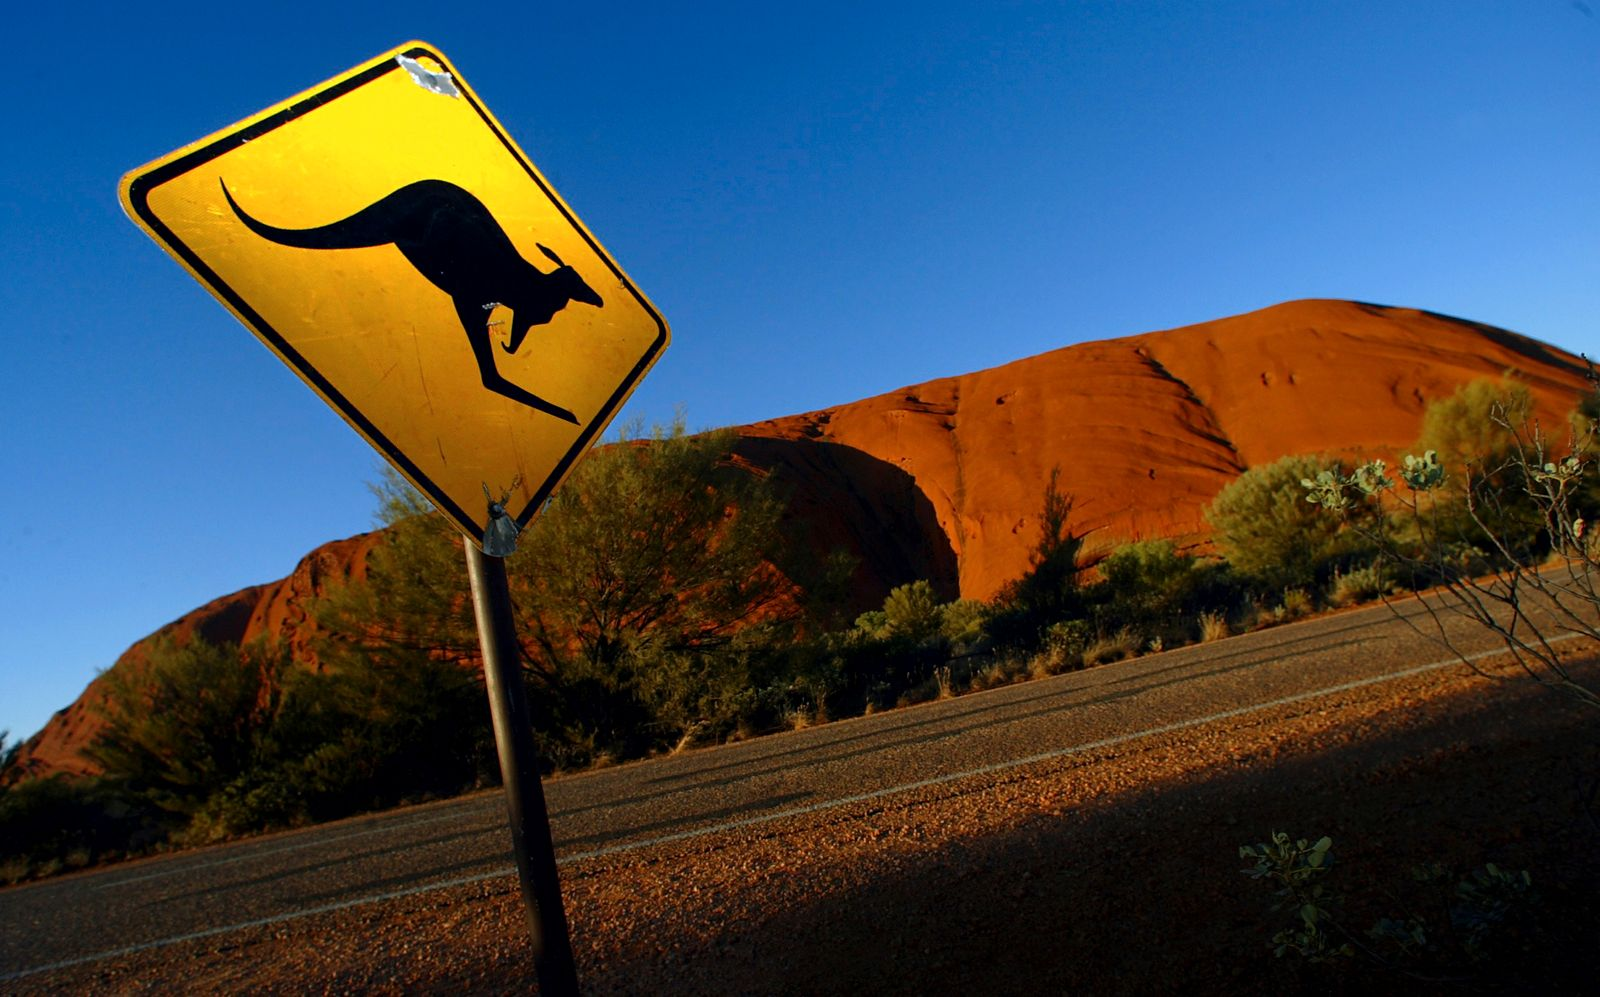 File photo of a road sign near Uluru (Ayers Rock), about 350 km (217 miles) southwest of the central Australian town of Alice Springs